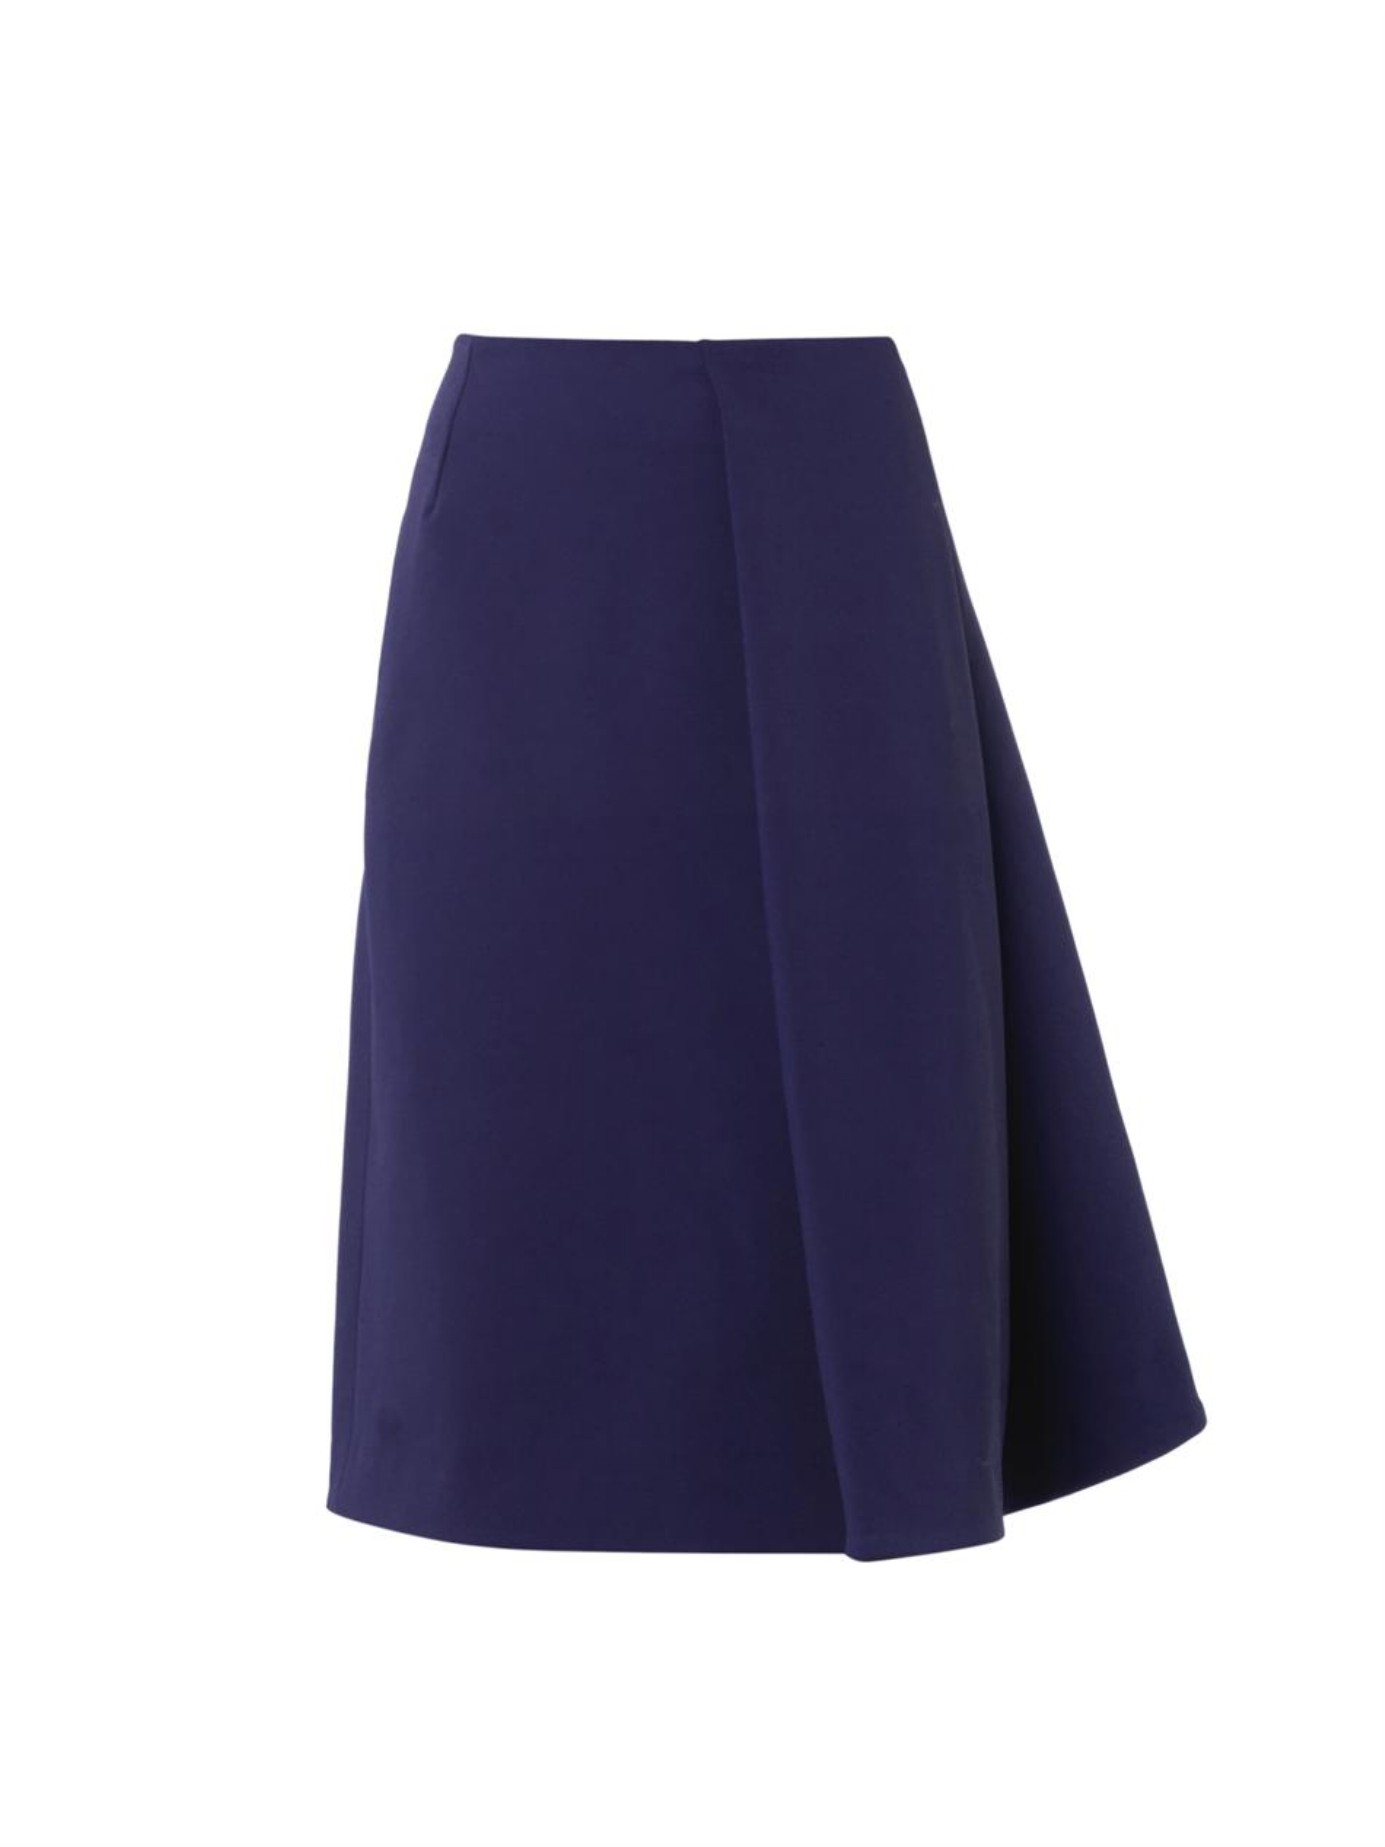 J.w.anderson Sail Wool-Blend A-Line Skirt in Blue | Lyst